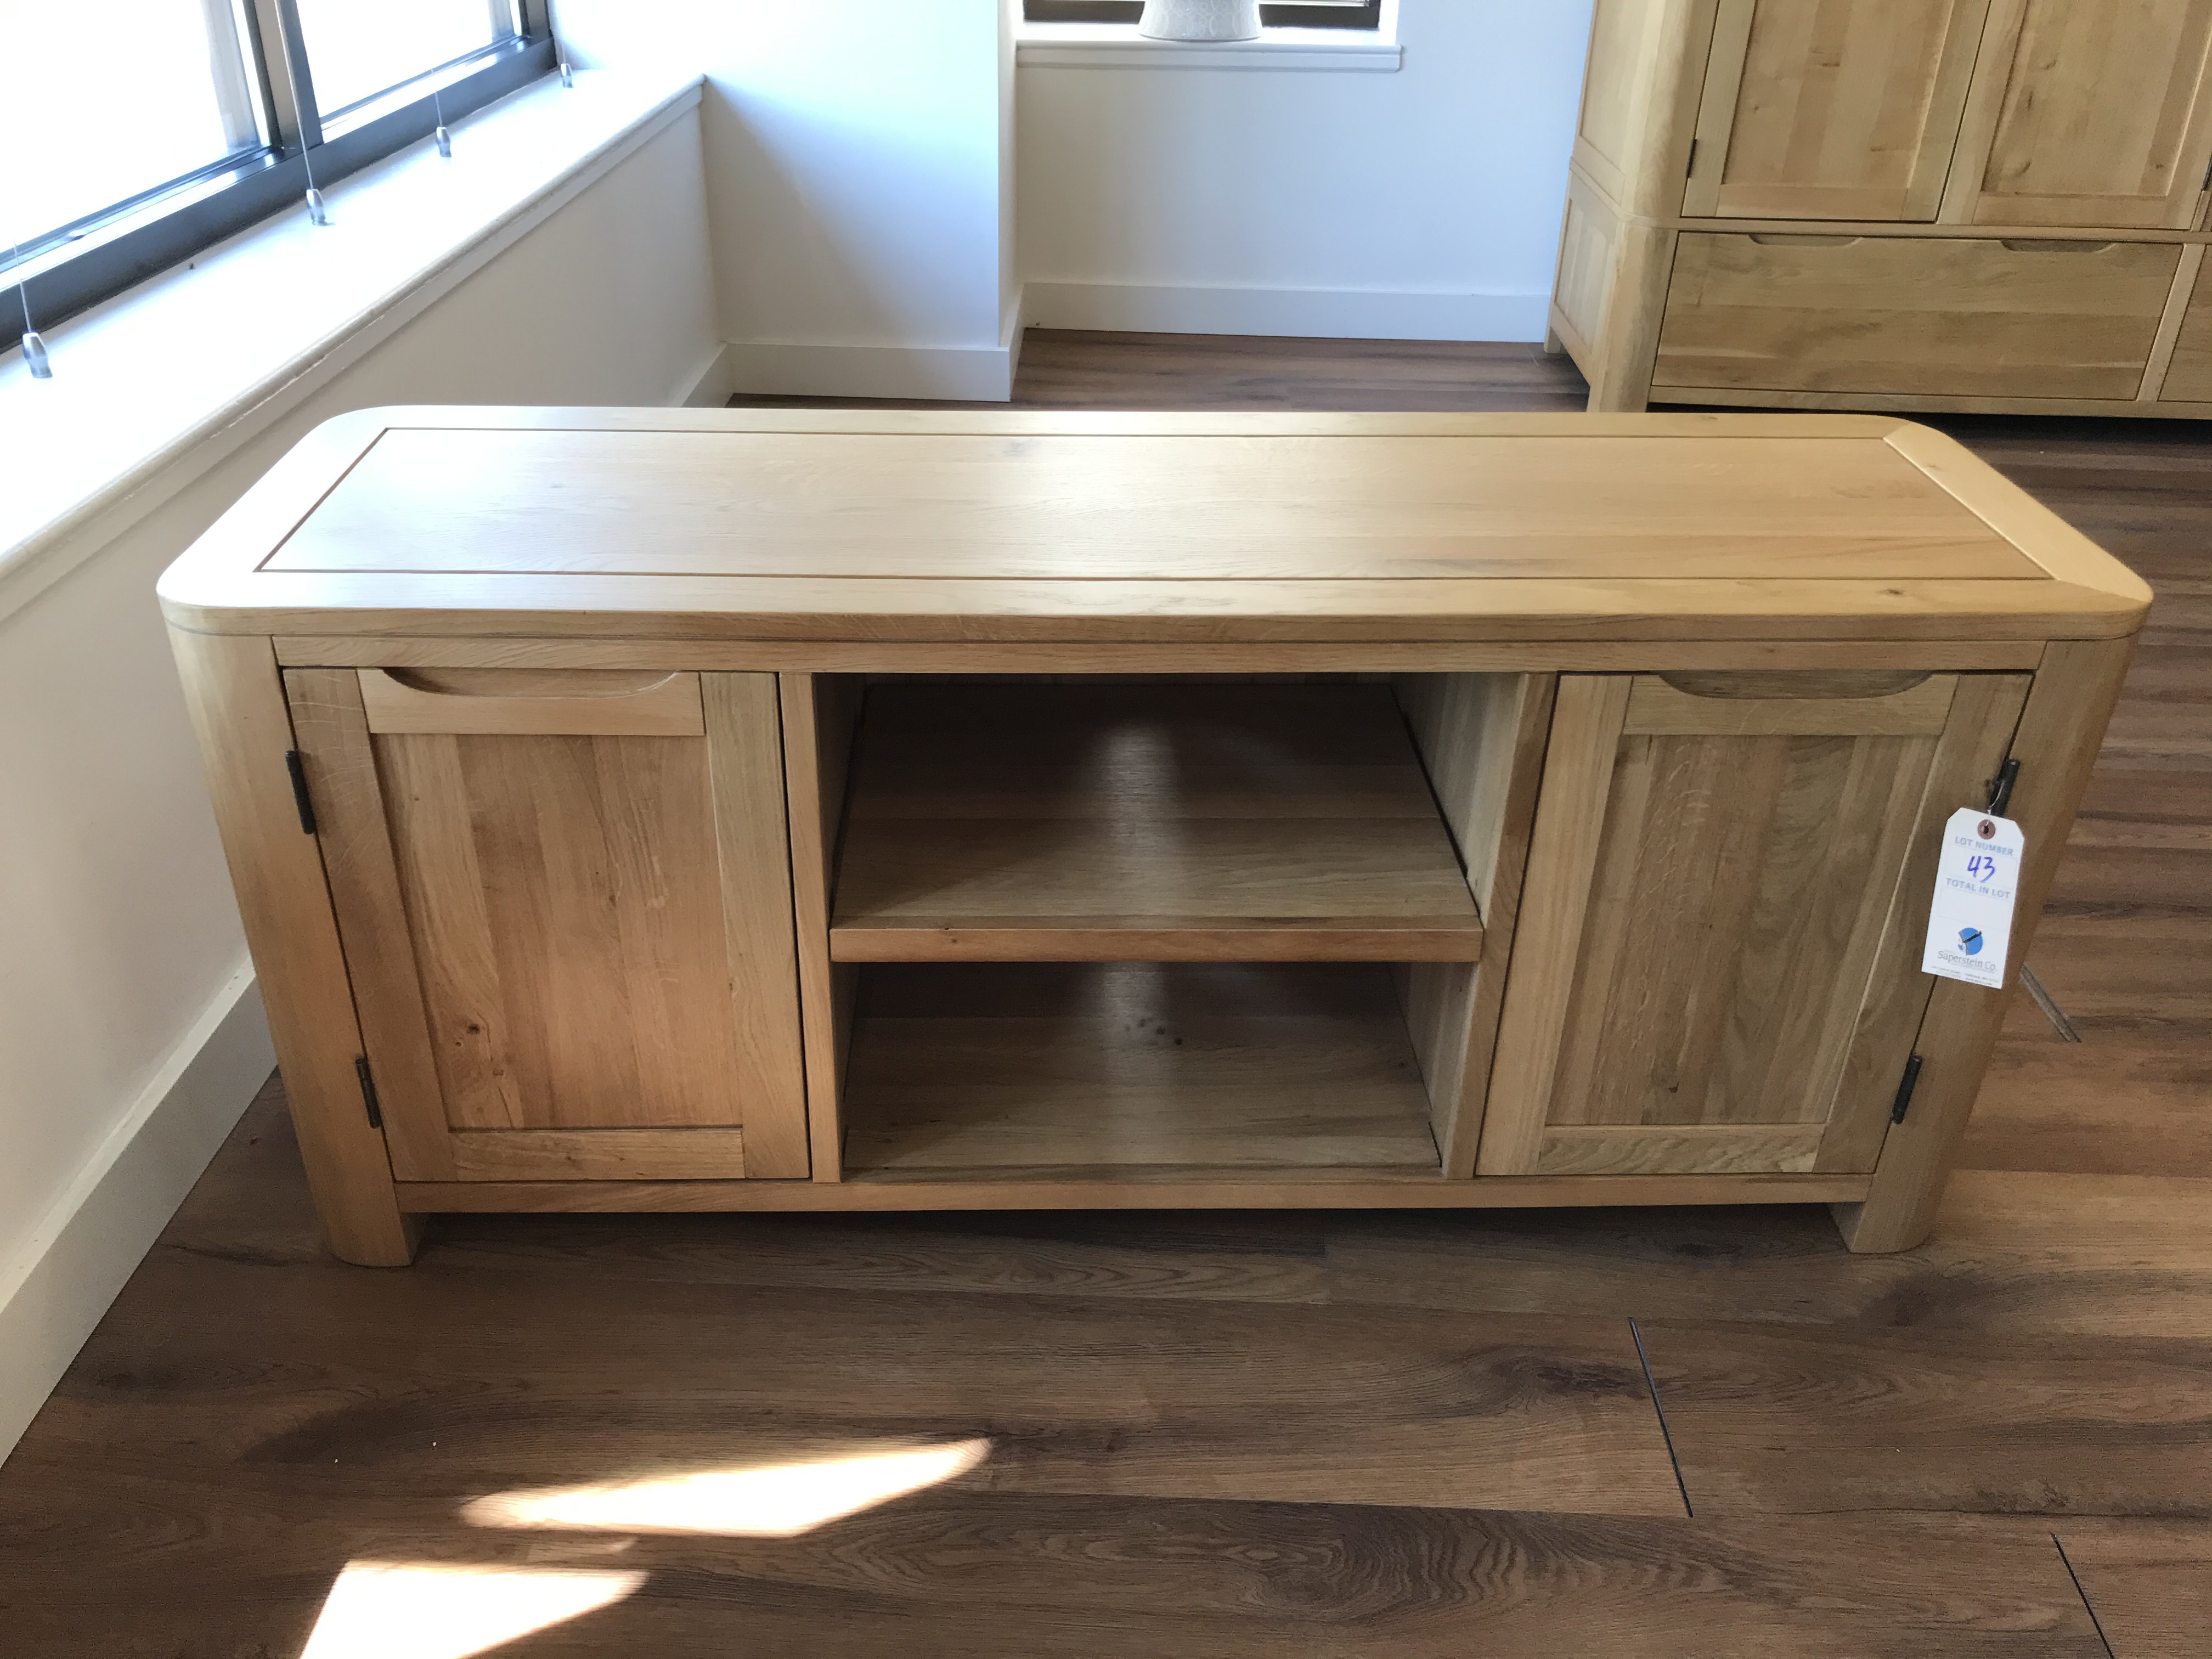 Large TV Stand (Romsey) See Picture For Dimensions and Product Info